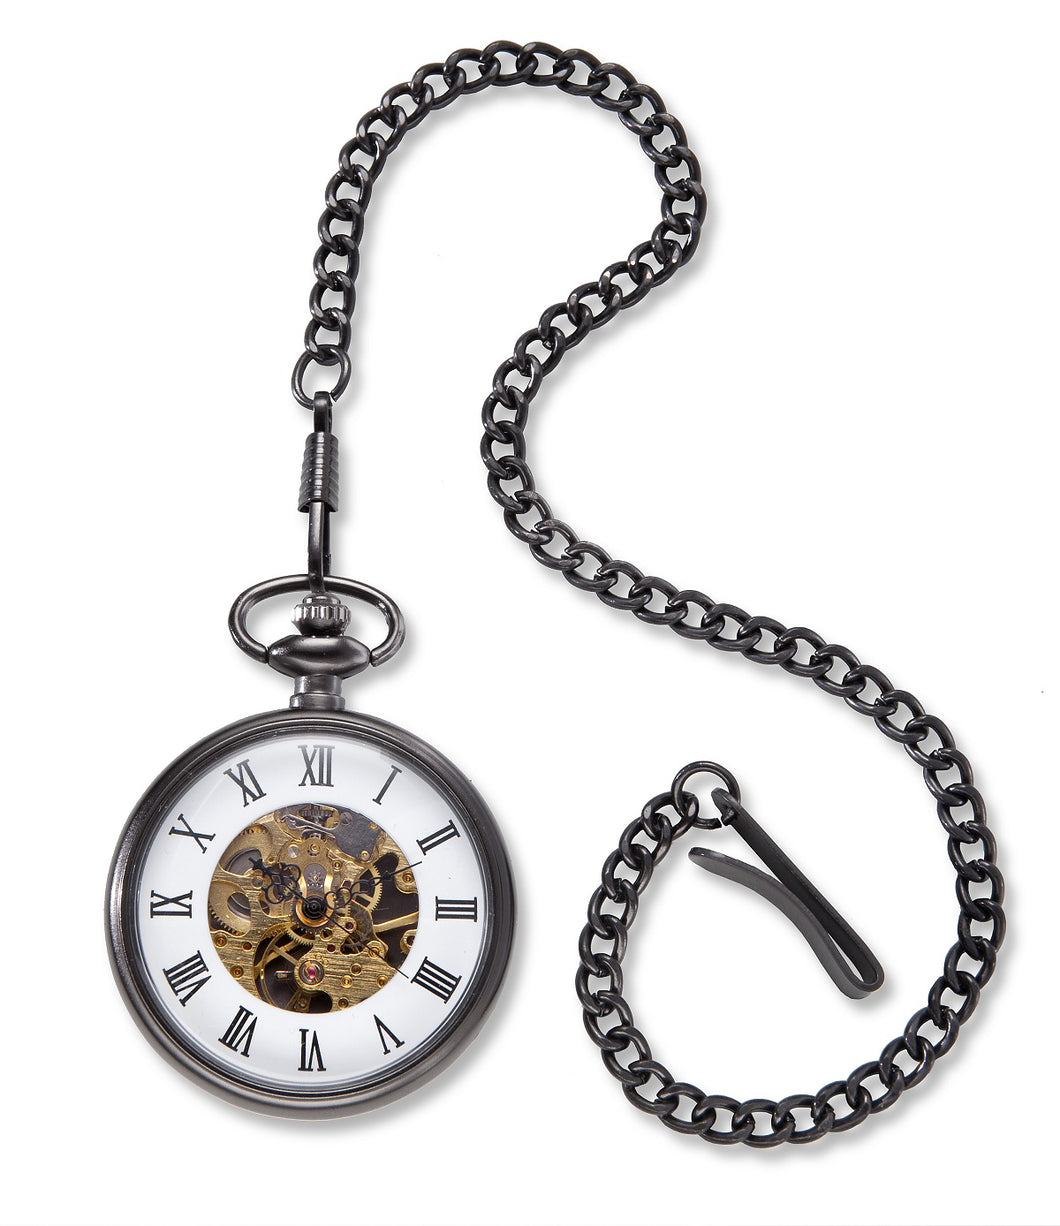 Men's Engraved Gunmetal Gray Exposed Gears Pocket Watch & Chain - Everything Man Shop